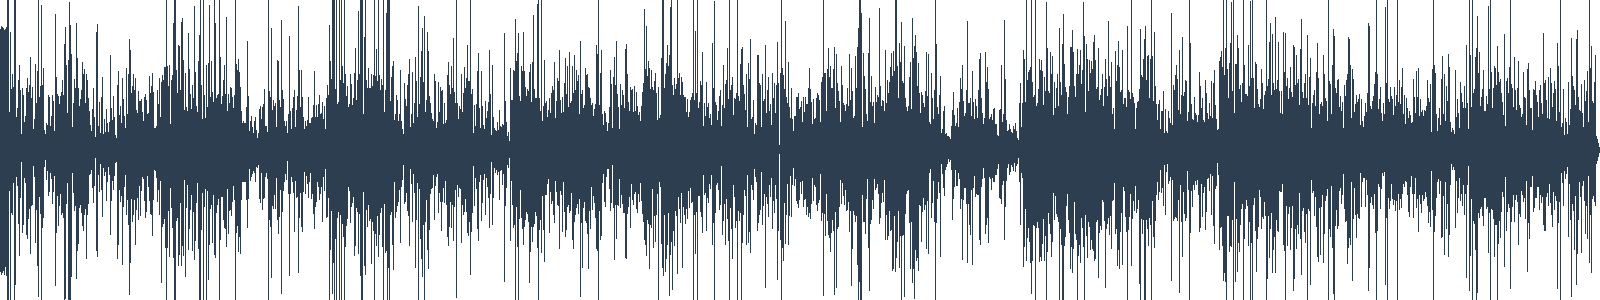 #58 Tour Down Under, Froome a Poprad - Home of Cycling waveform